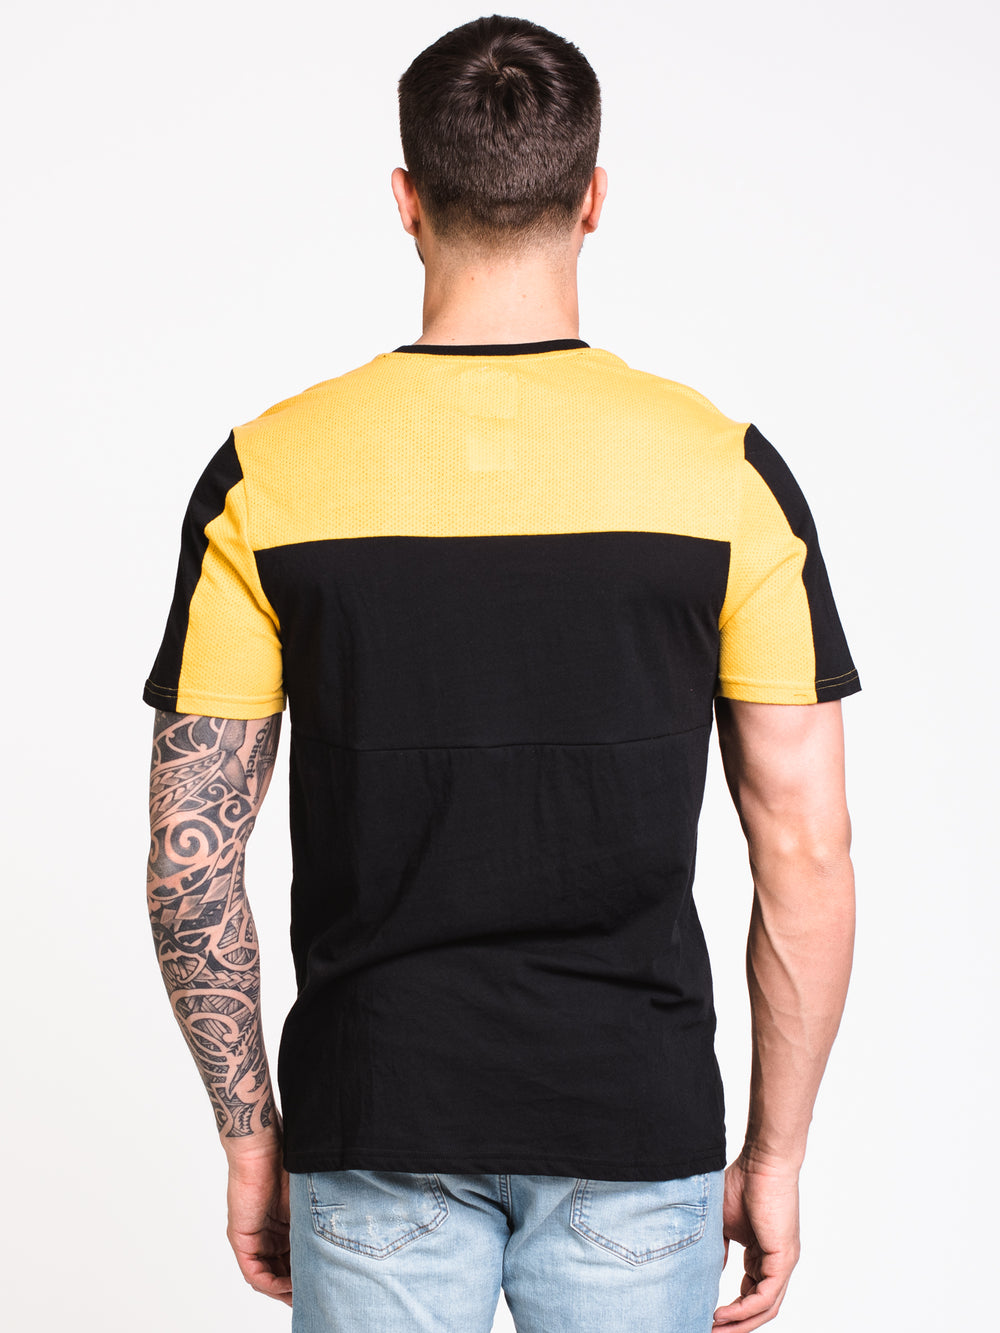 MENS PINNED SHORT SLEEVE JERSEY - BLACK/YELLOW - CLEARANCE